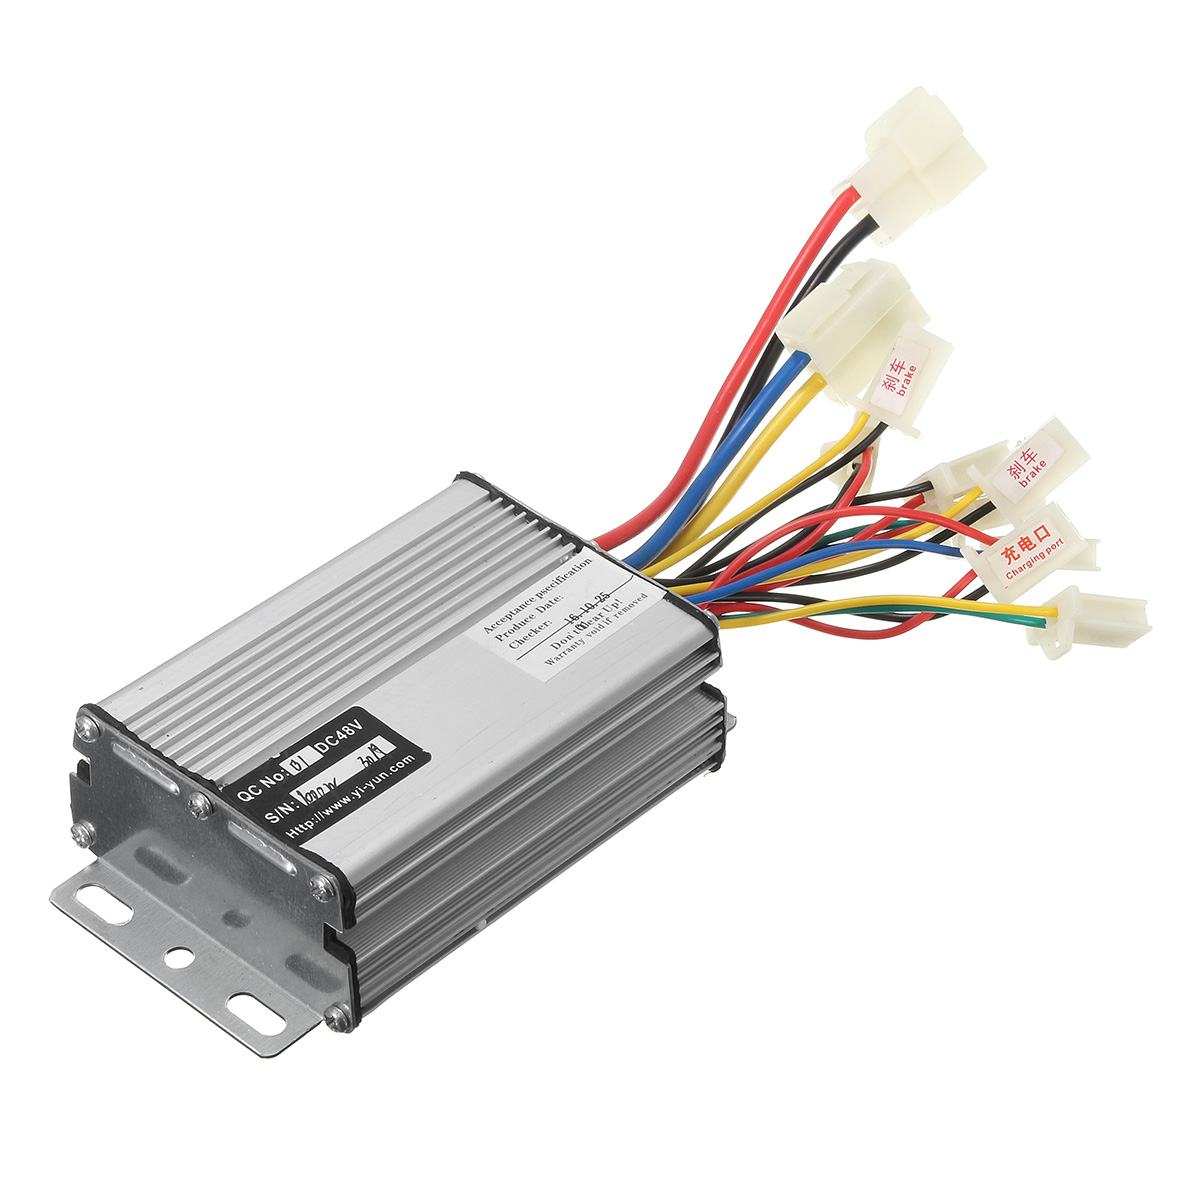 48v1000w Electric Vehicle Motor Brush Controller Scooter